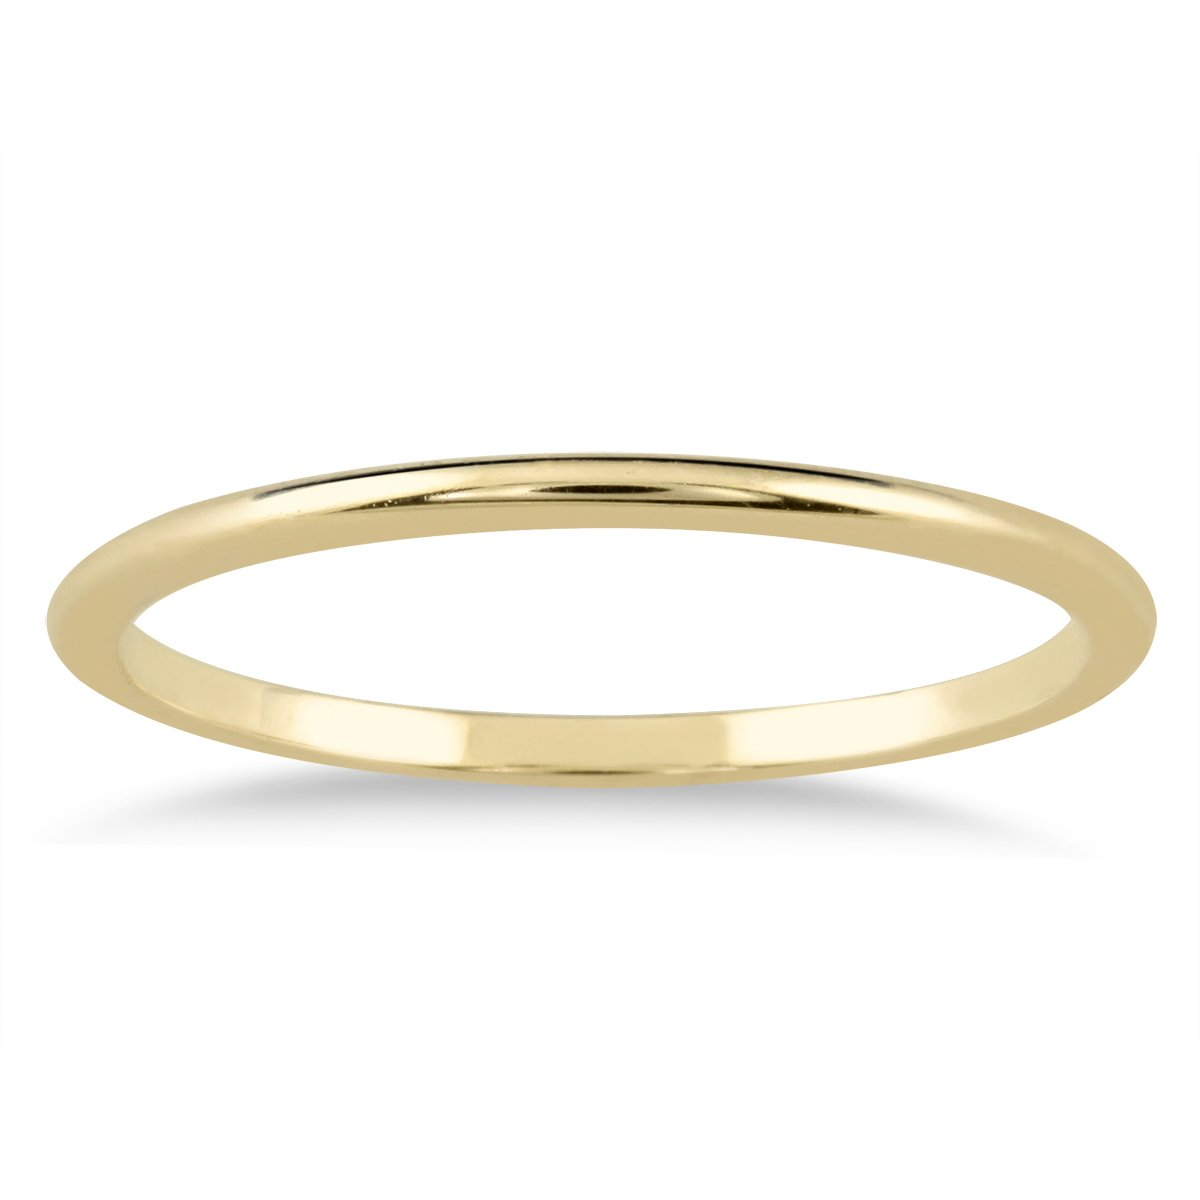 1mm Thin Domed Wedding Band in 14K Yellow Gold Size 8 by Szul